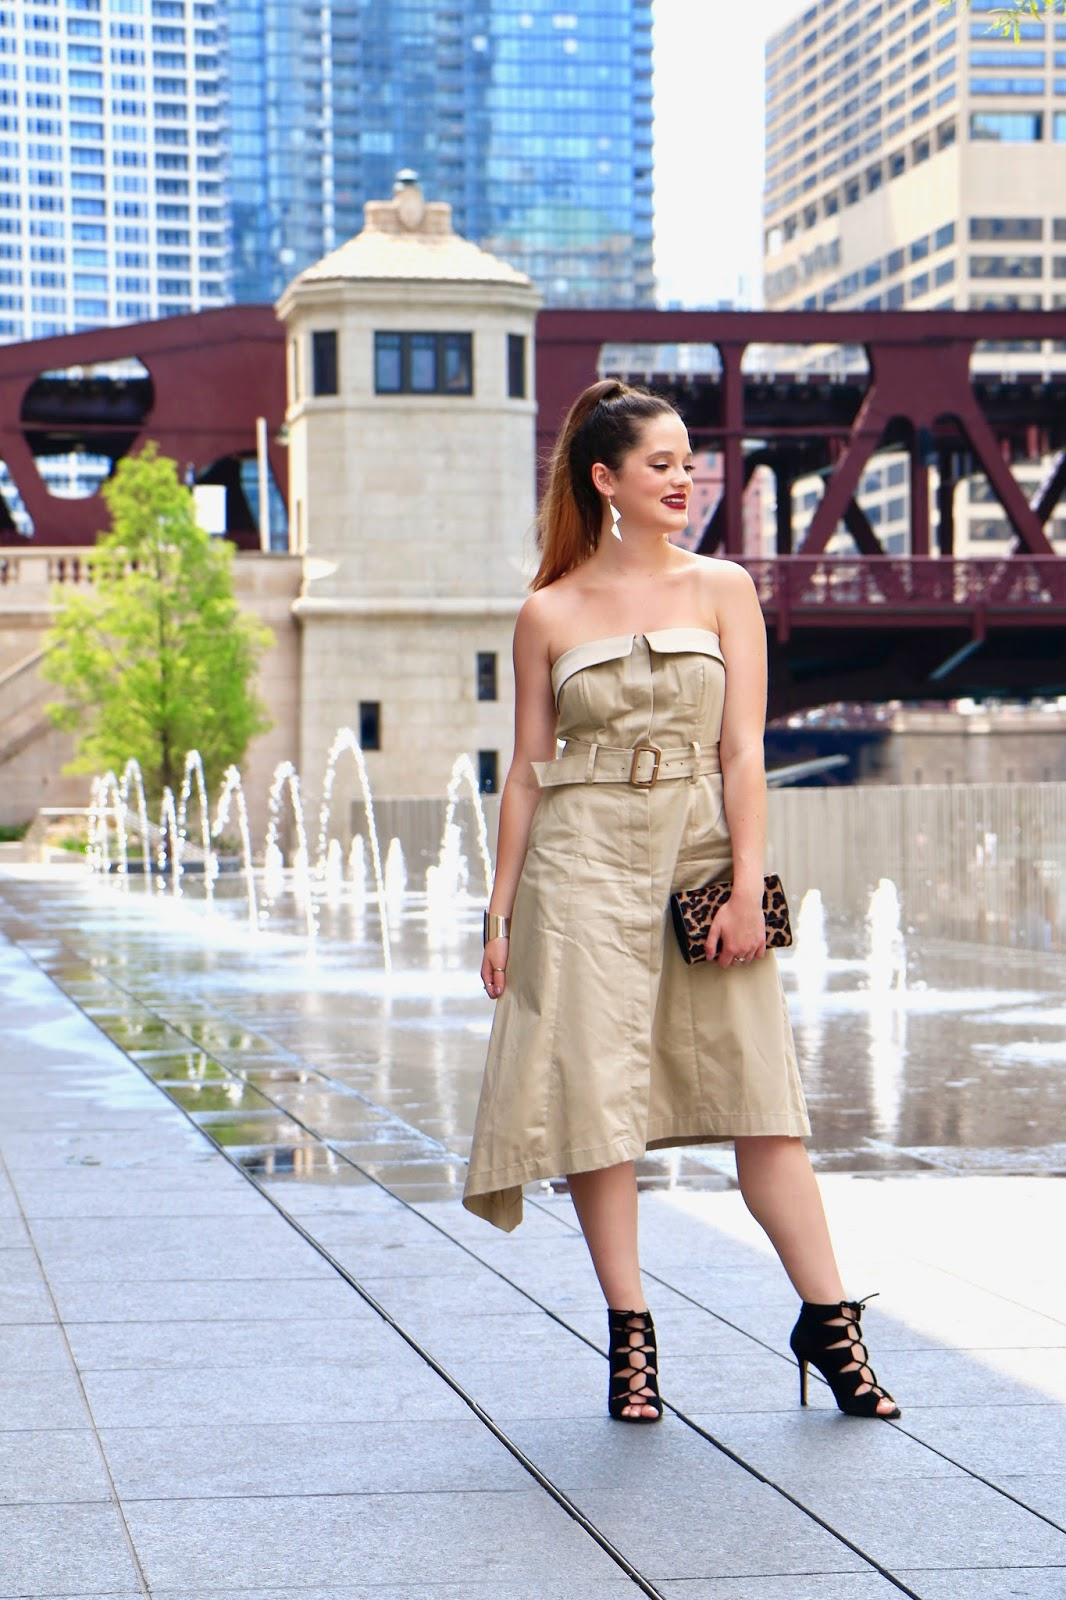 NYC Fashion blogger Kathleen Harper wearing a khaki dress